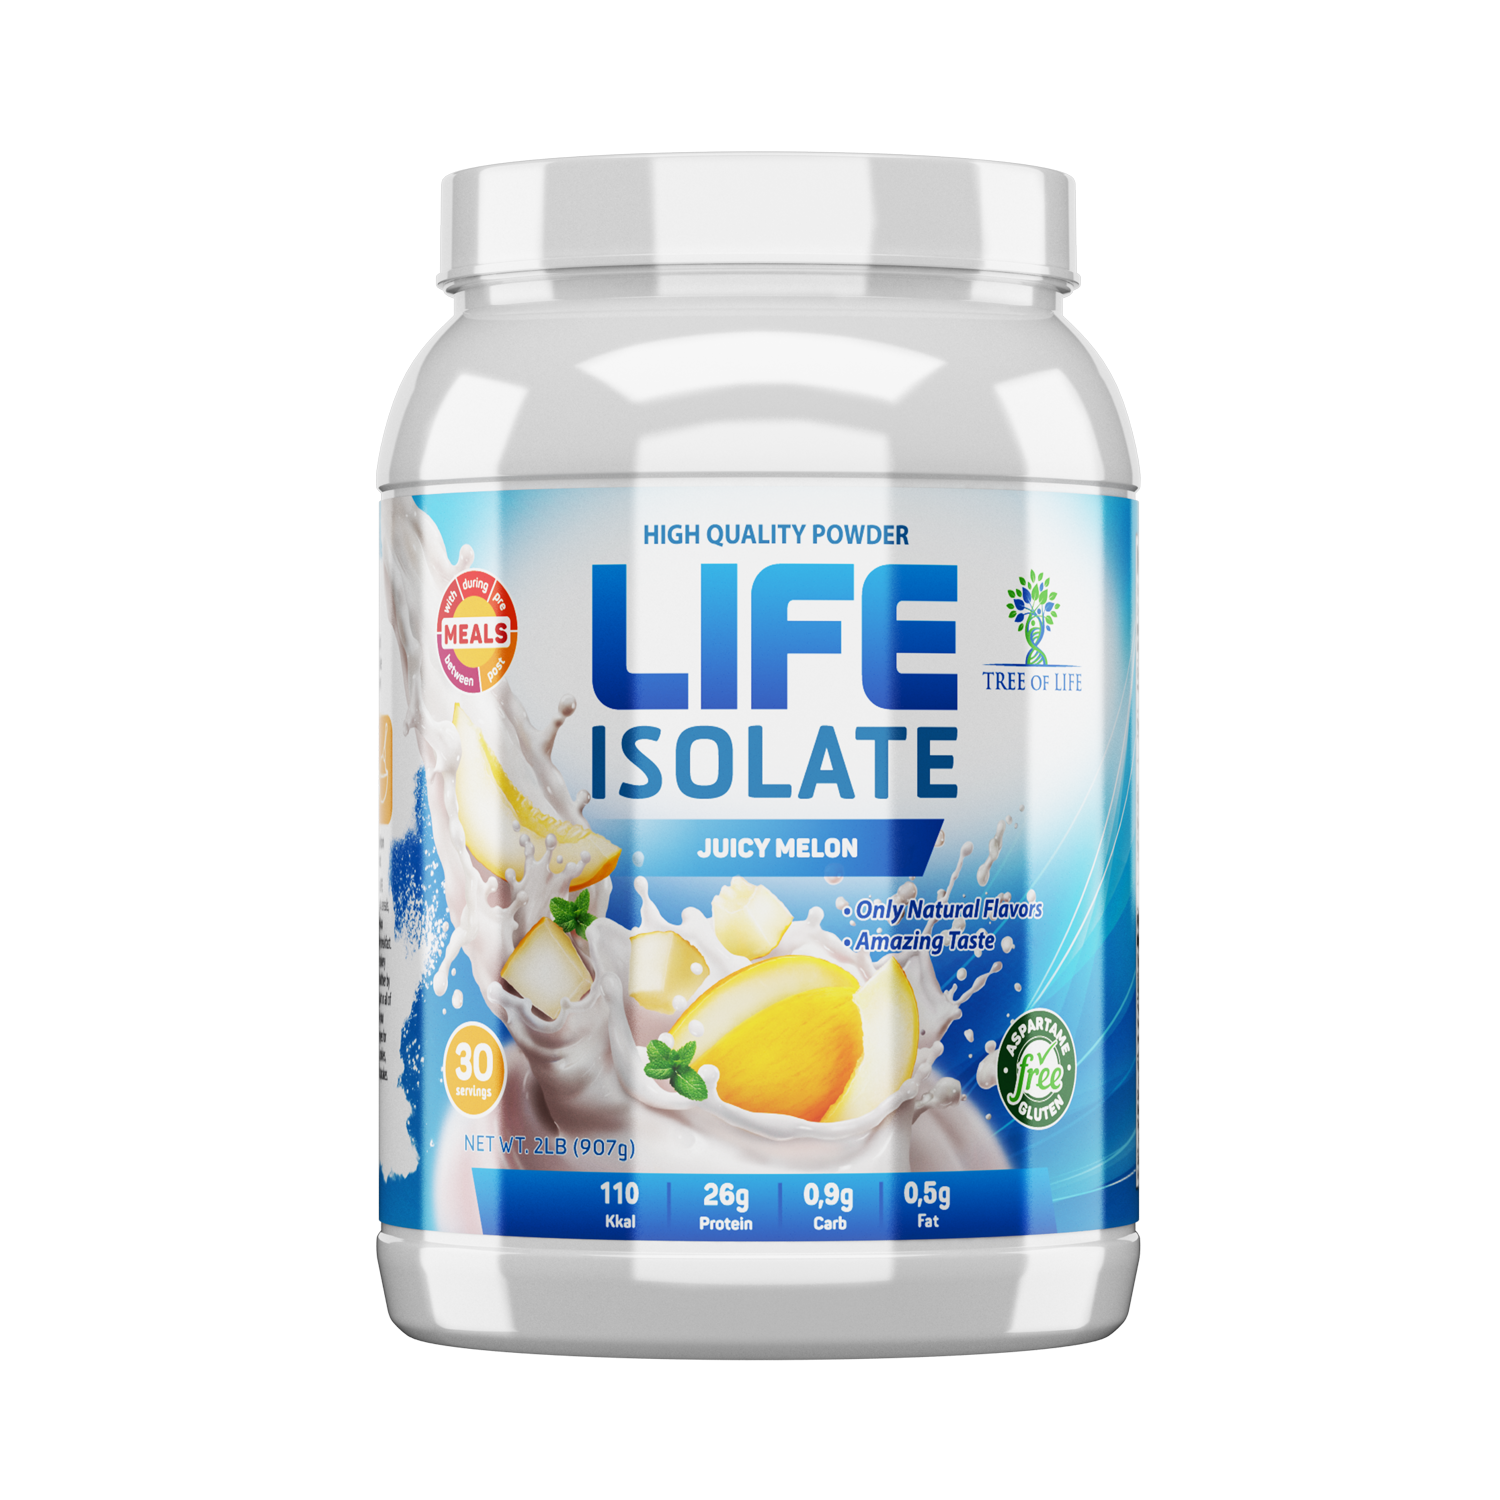 Life Isolate 2lb Juicy melon